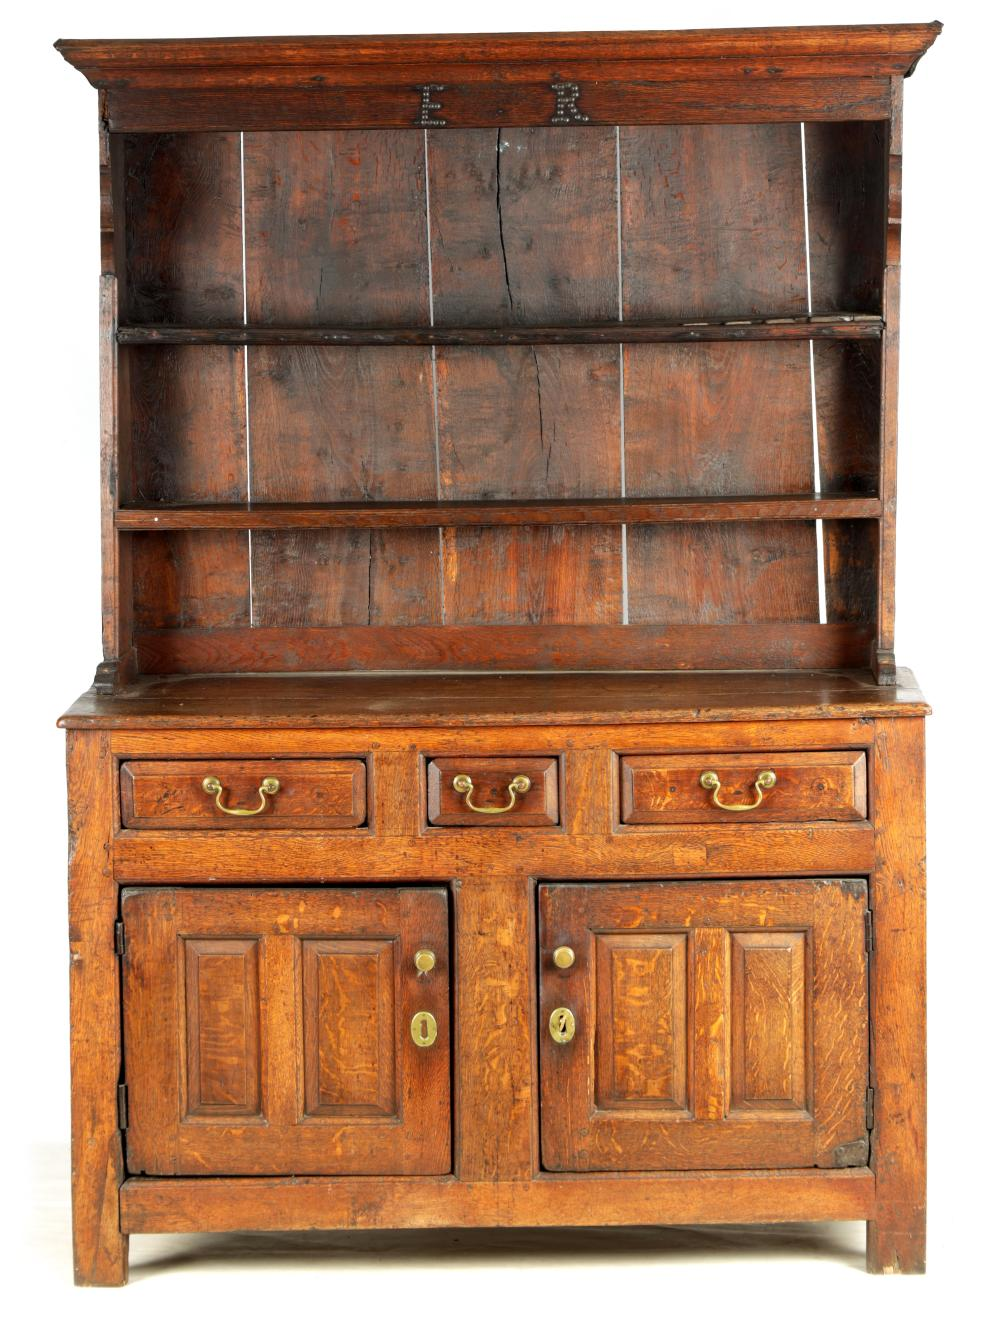 AN EARLY 18TH CENTURY JOINED OAK DRESSER AND RACK OF SMALL SIZE INITIALLED ER TO THE RACKLED ER